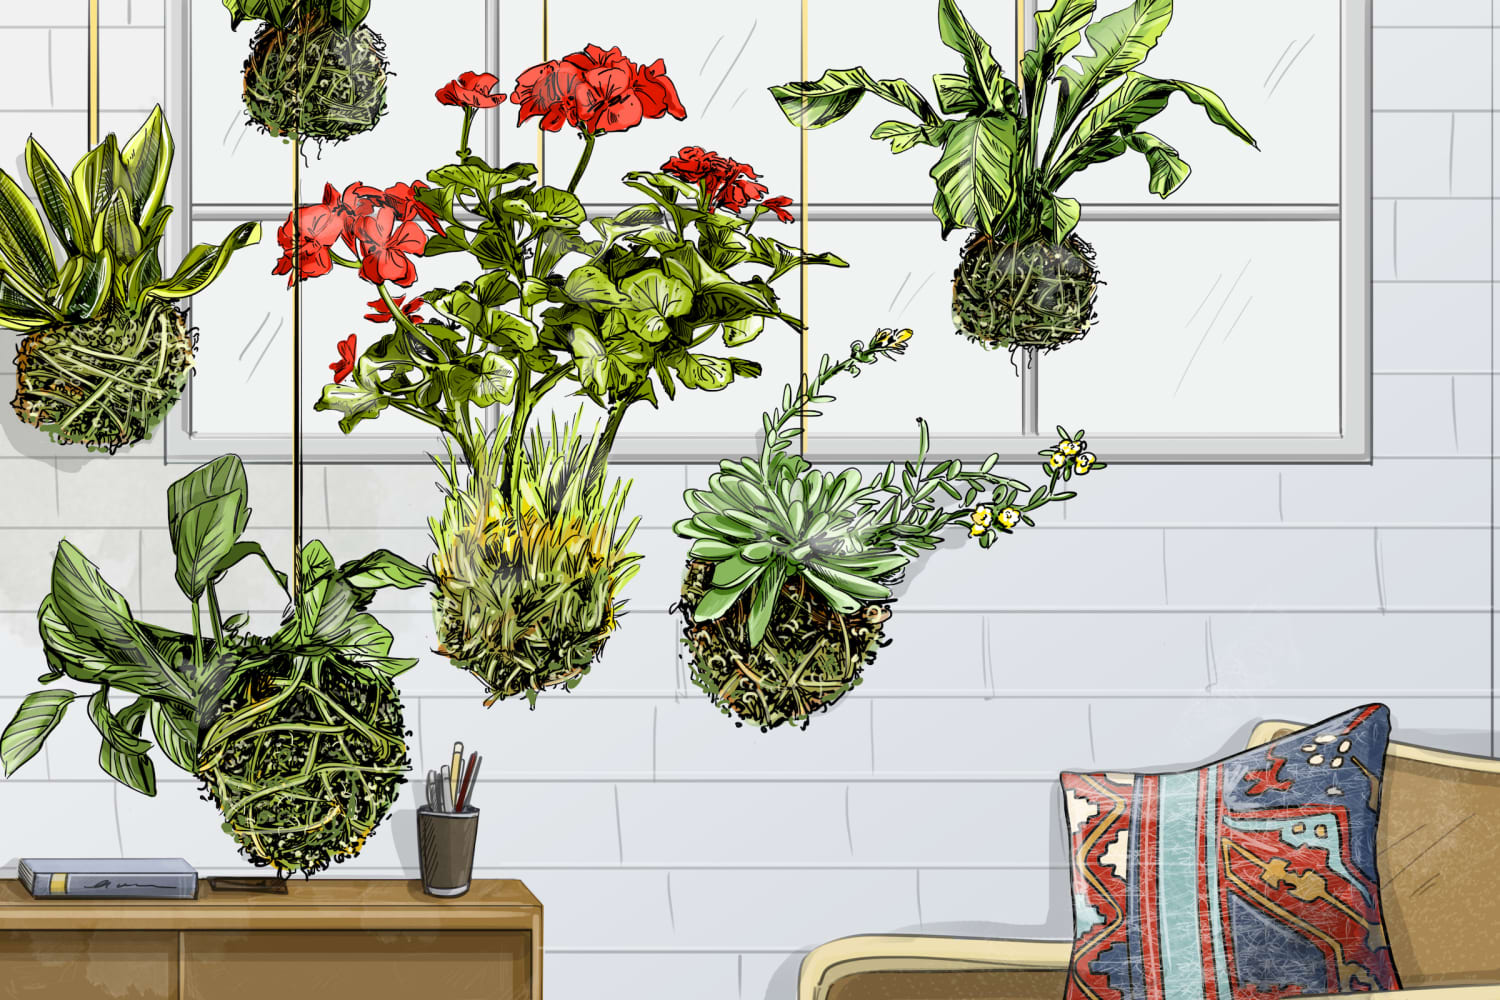 How to Make Kokedama: Hanging Gardens Perfect for Small Spaces